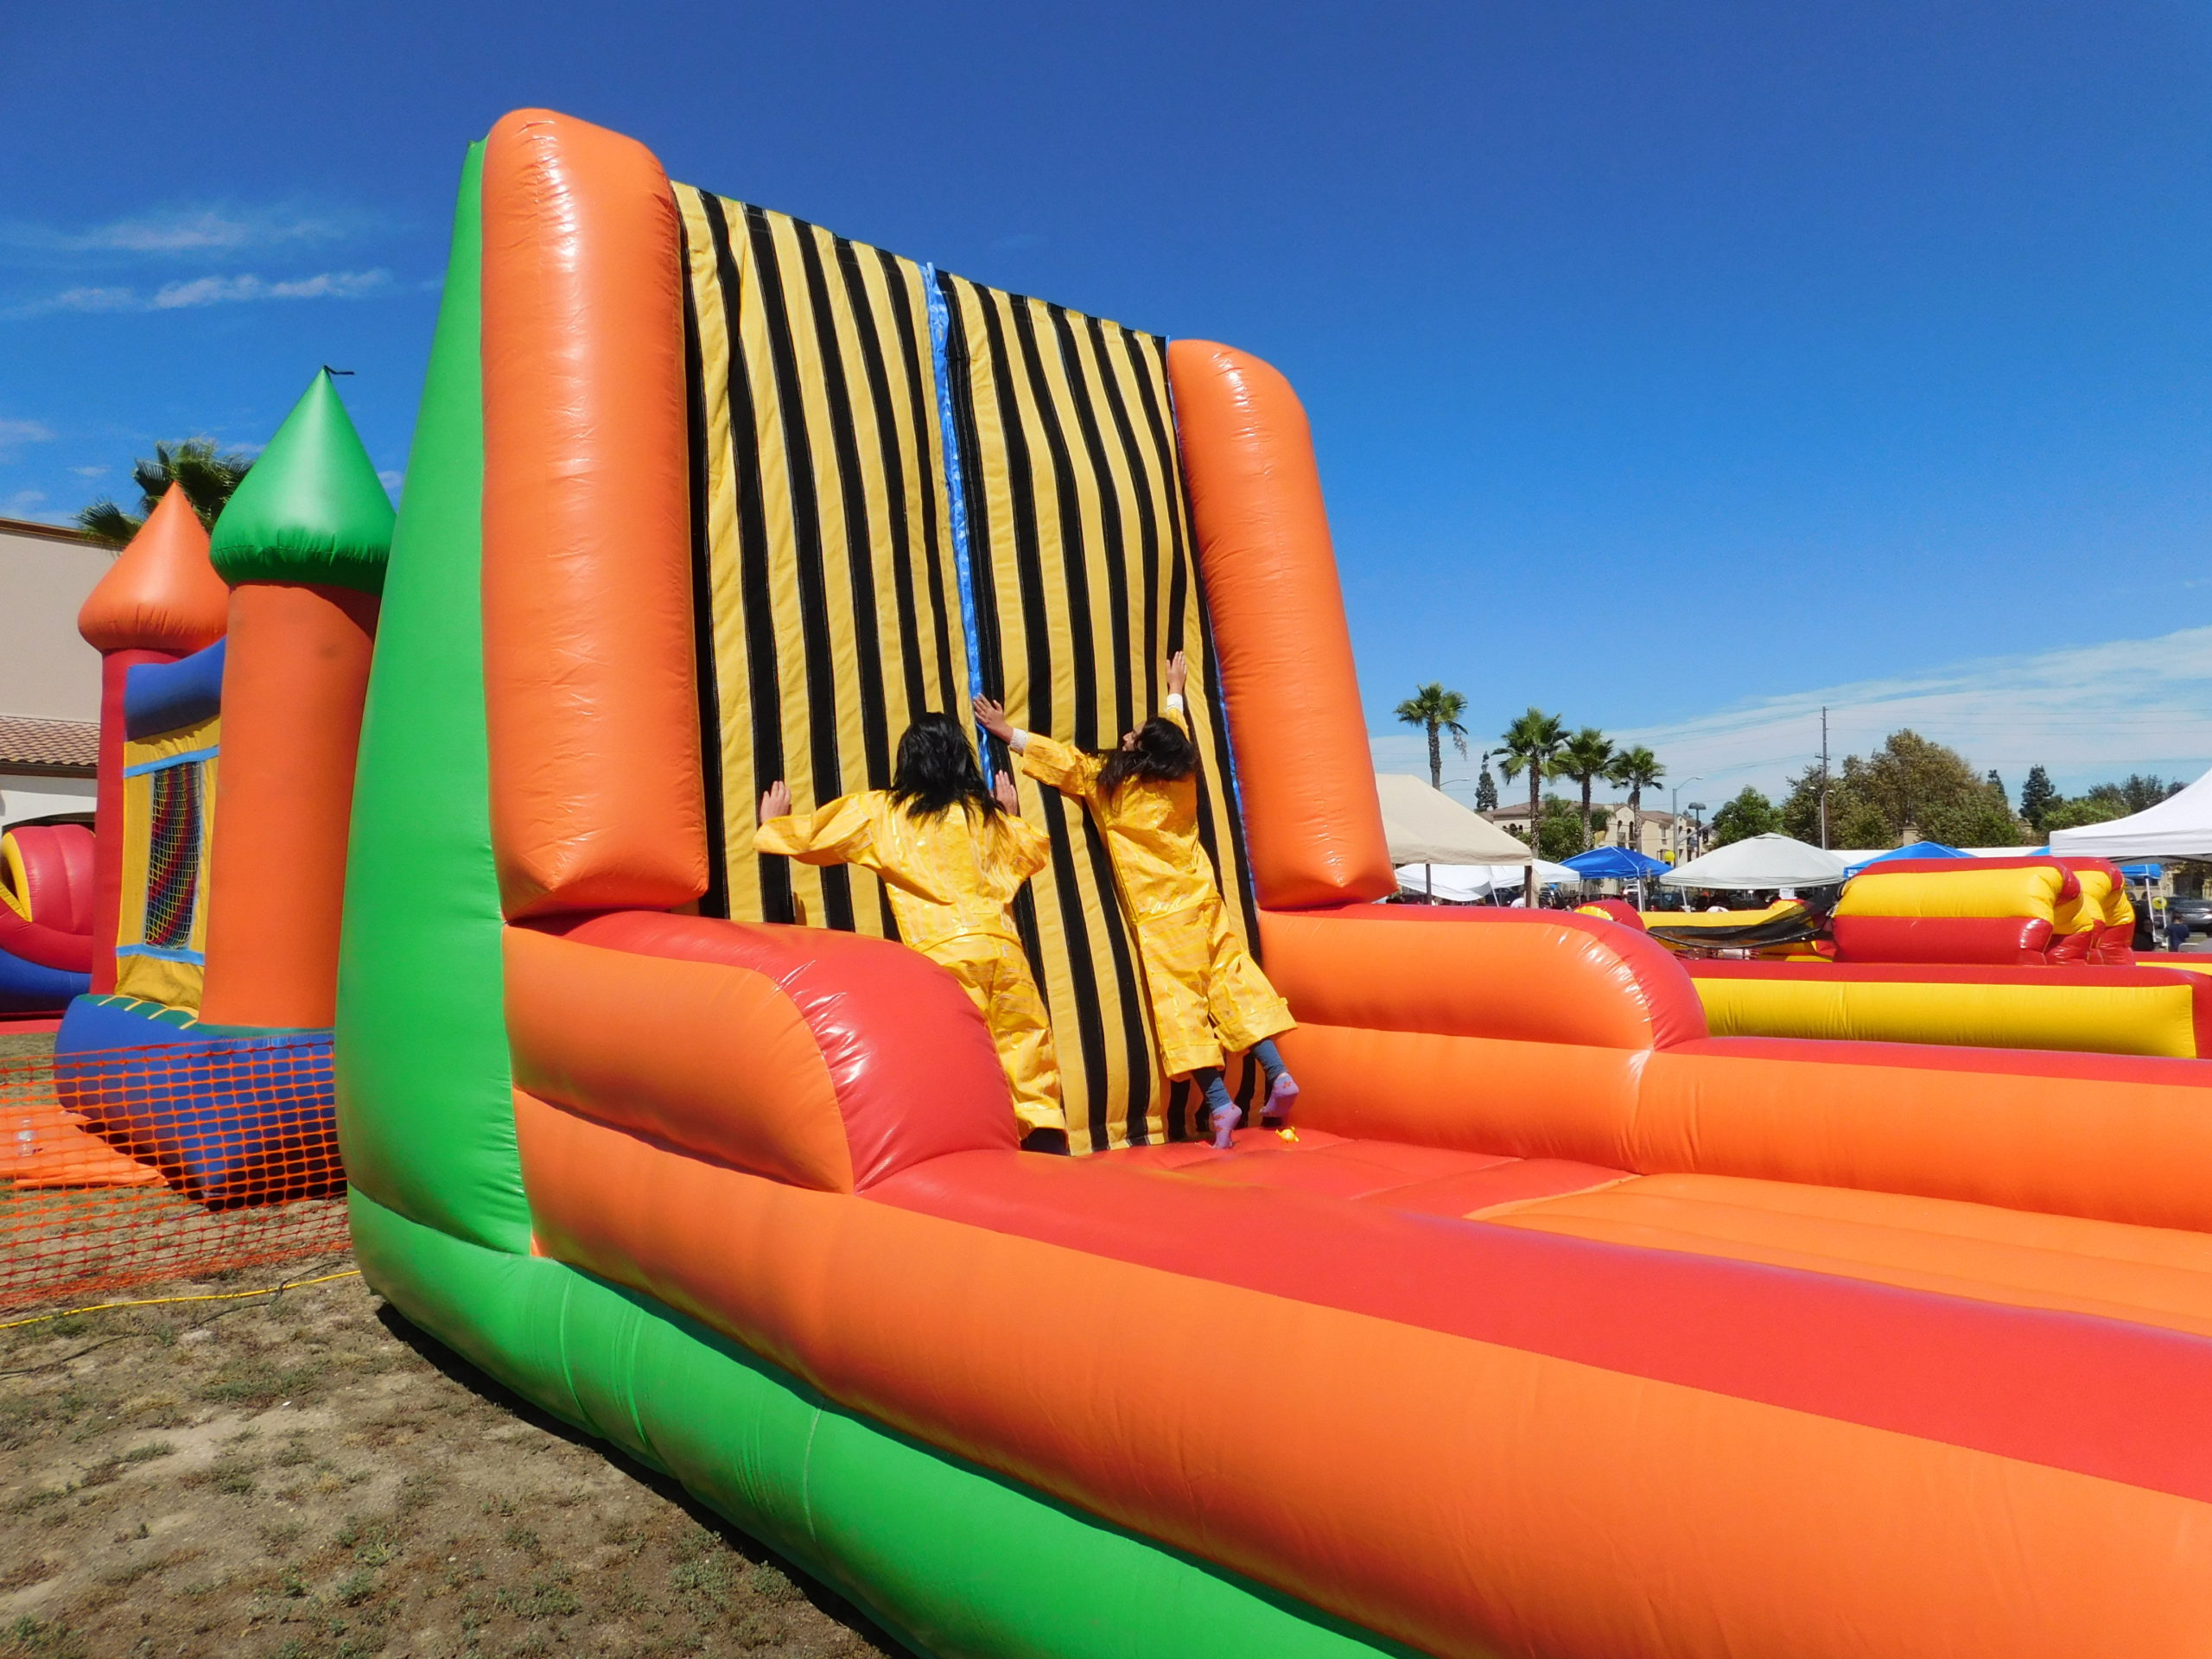 Can you stick to the Velcro Wall?